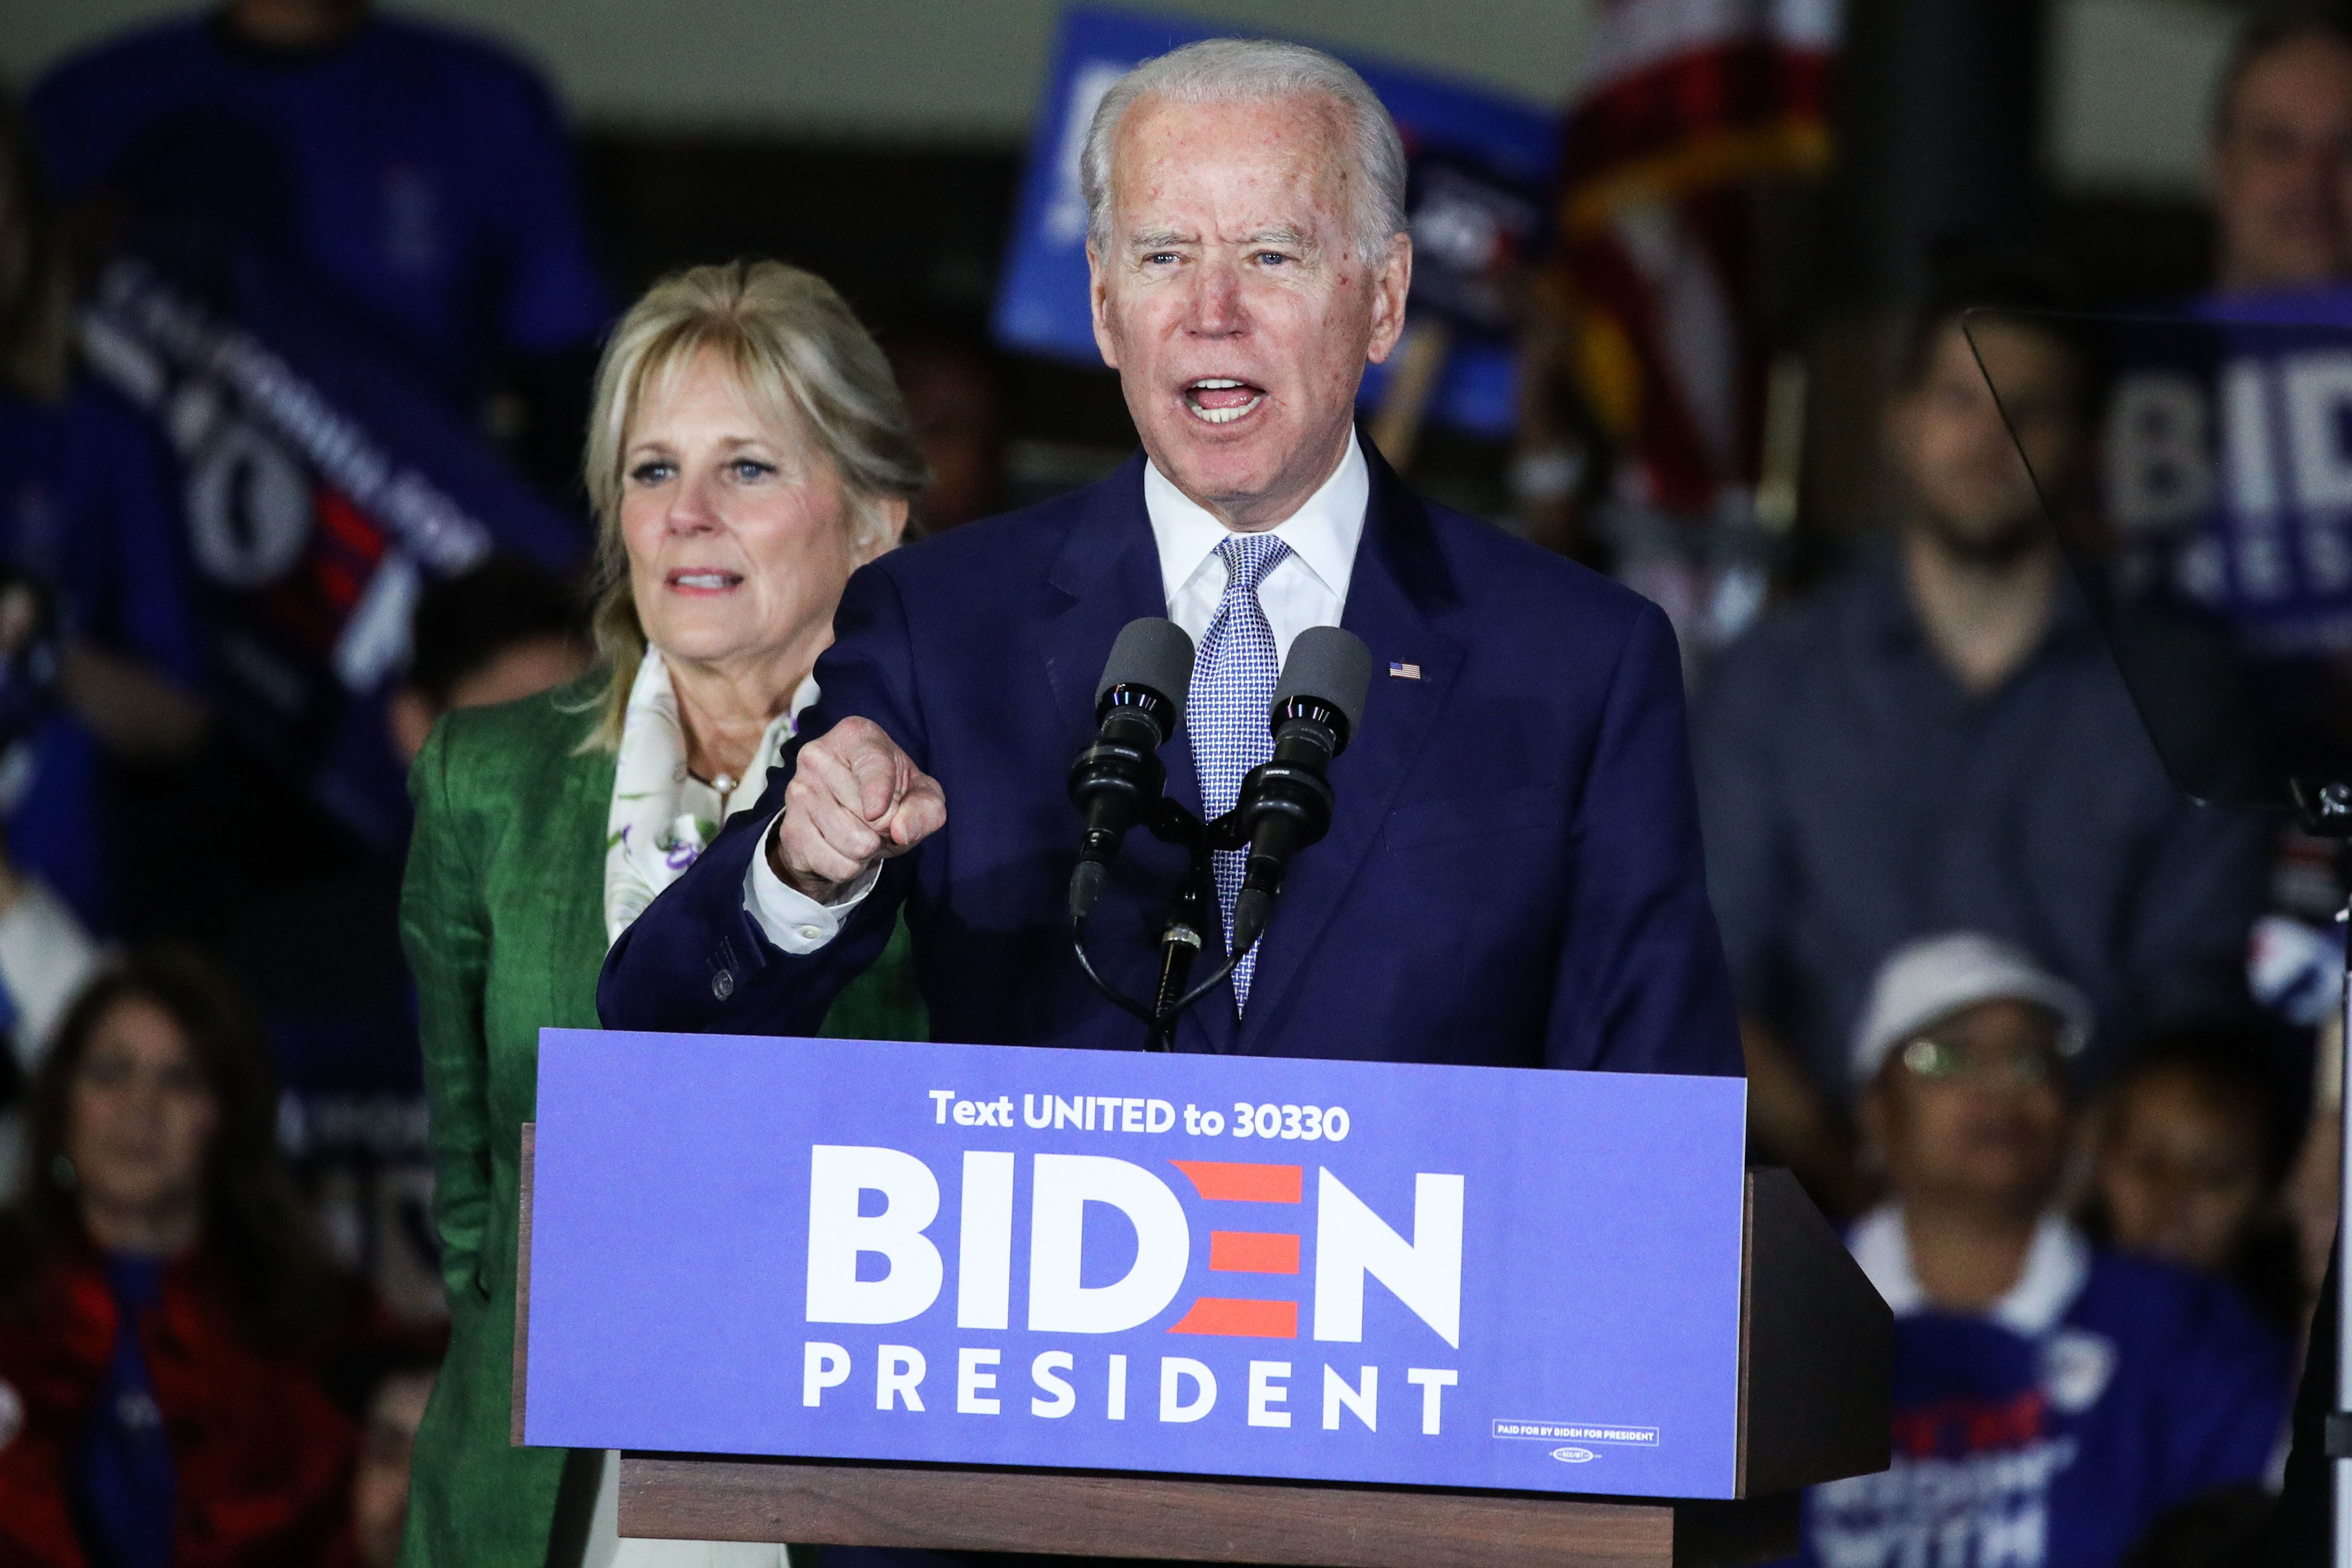 Joe Biden, the Democratic candidate for US President in the 2020 election. Reuters